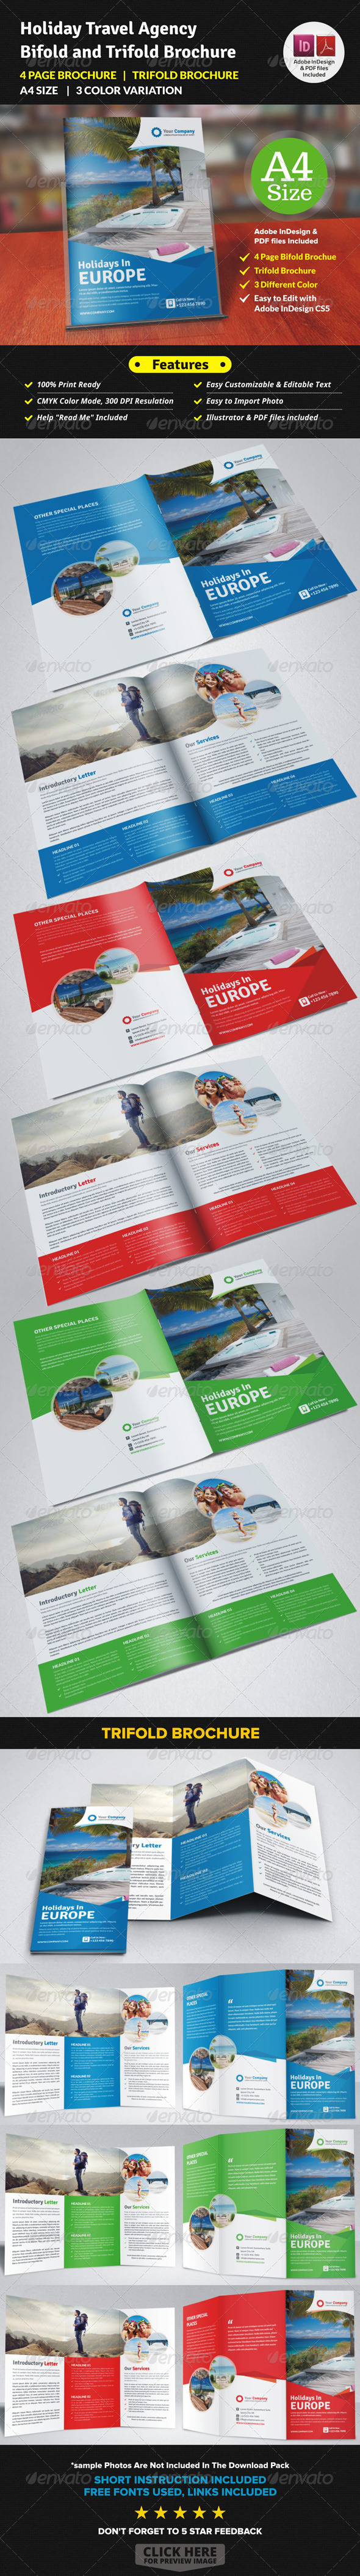 GraphicRiver Holiday Travel Agency Bifold and Trifold Brochure 7703770